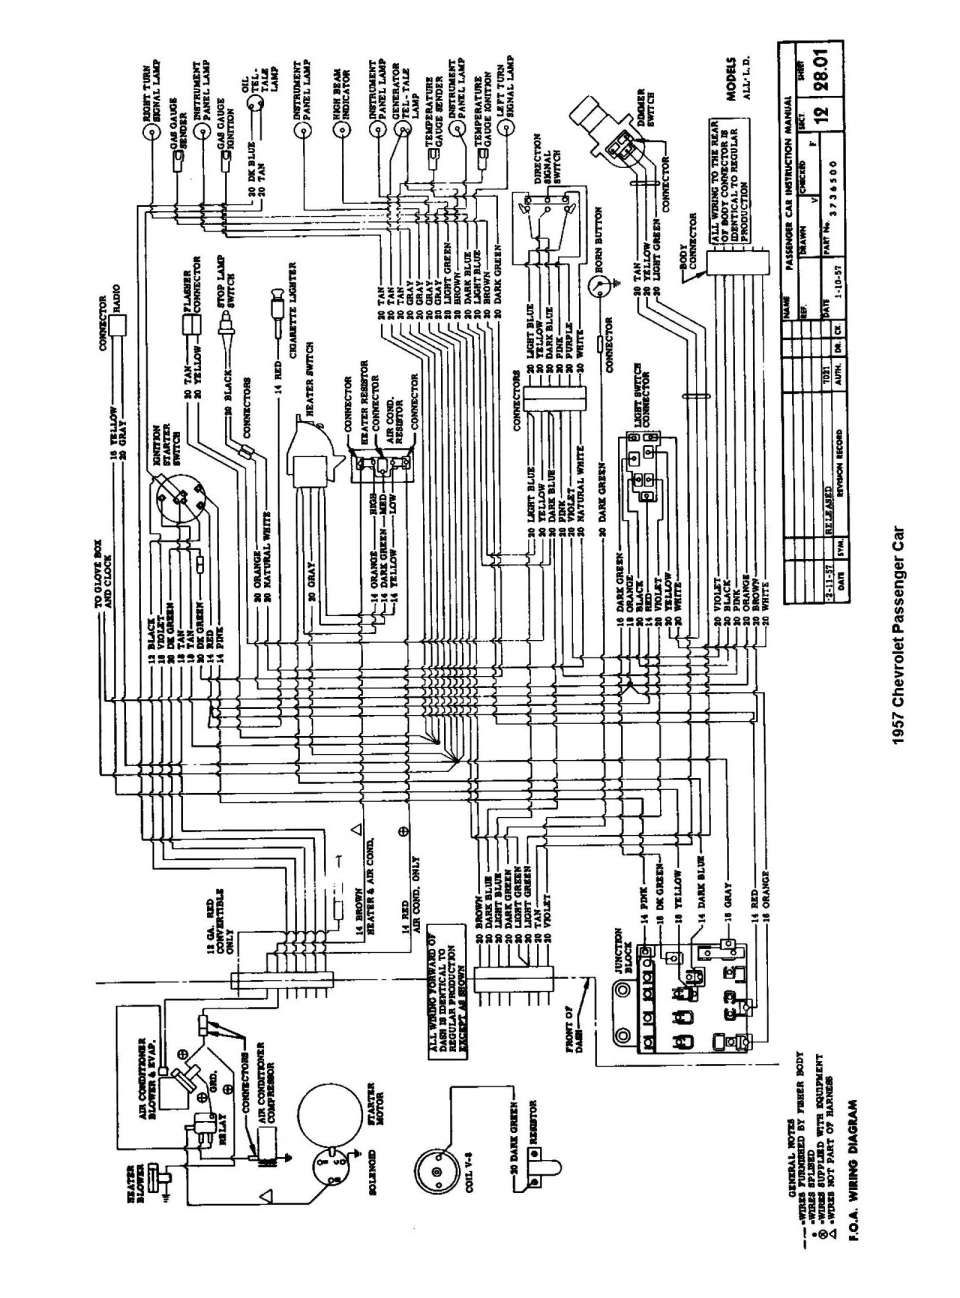 12 1961 Chevy Truck Wiring Diagram Truck Diagram In 2020 With